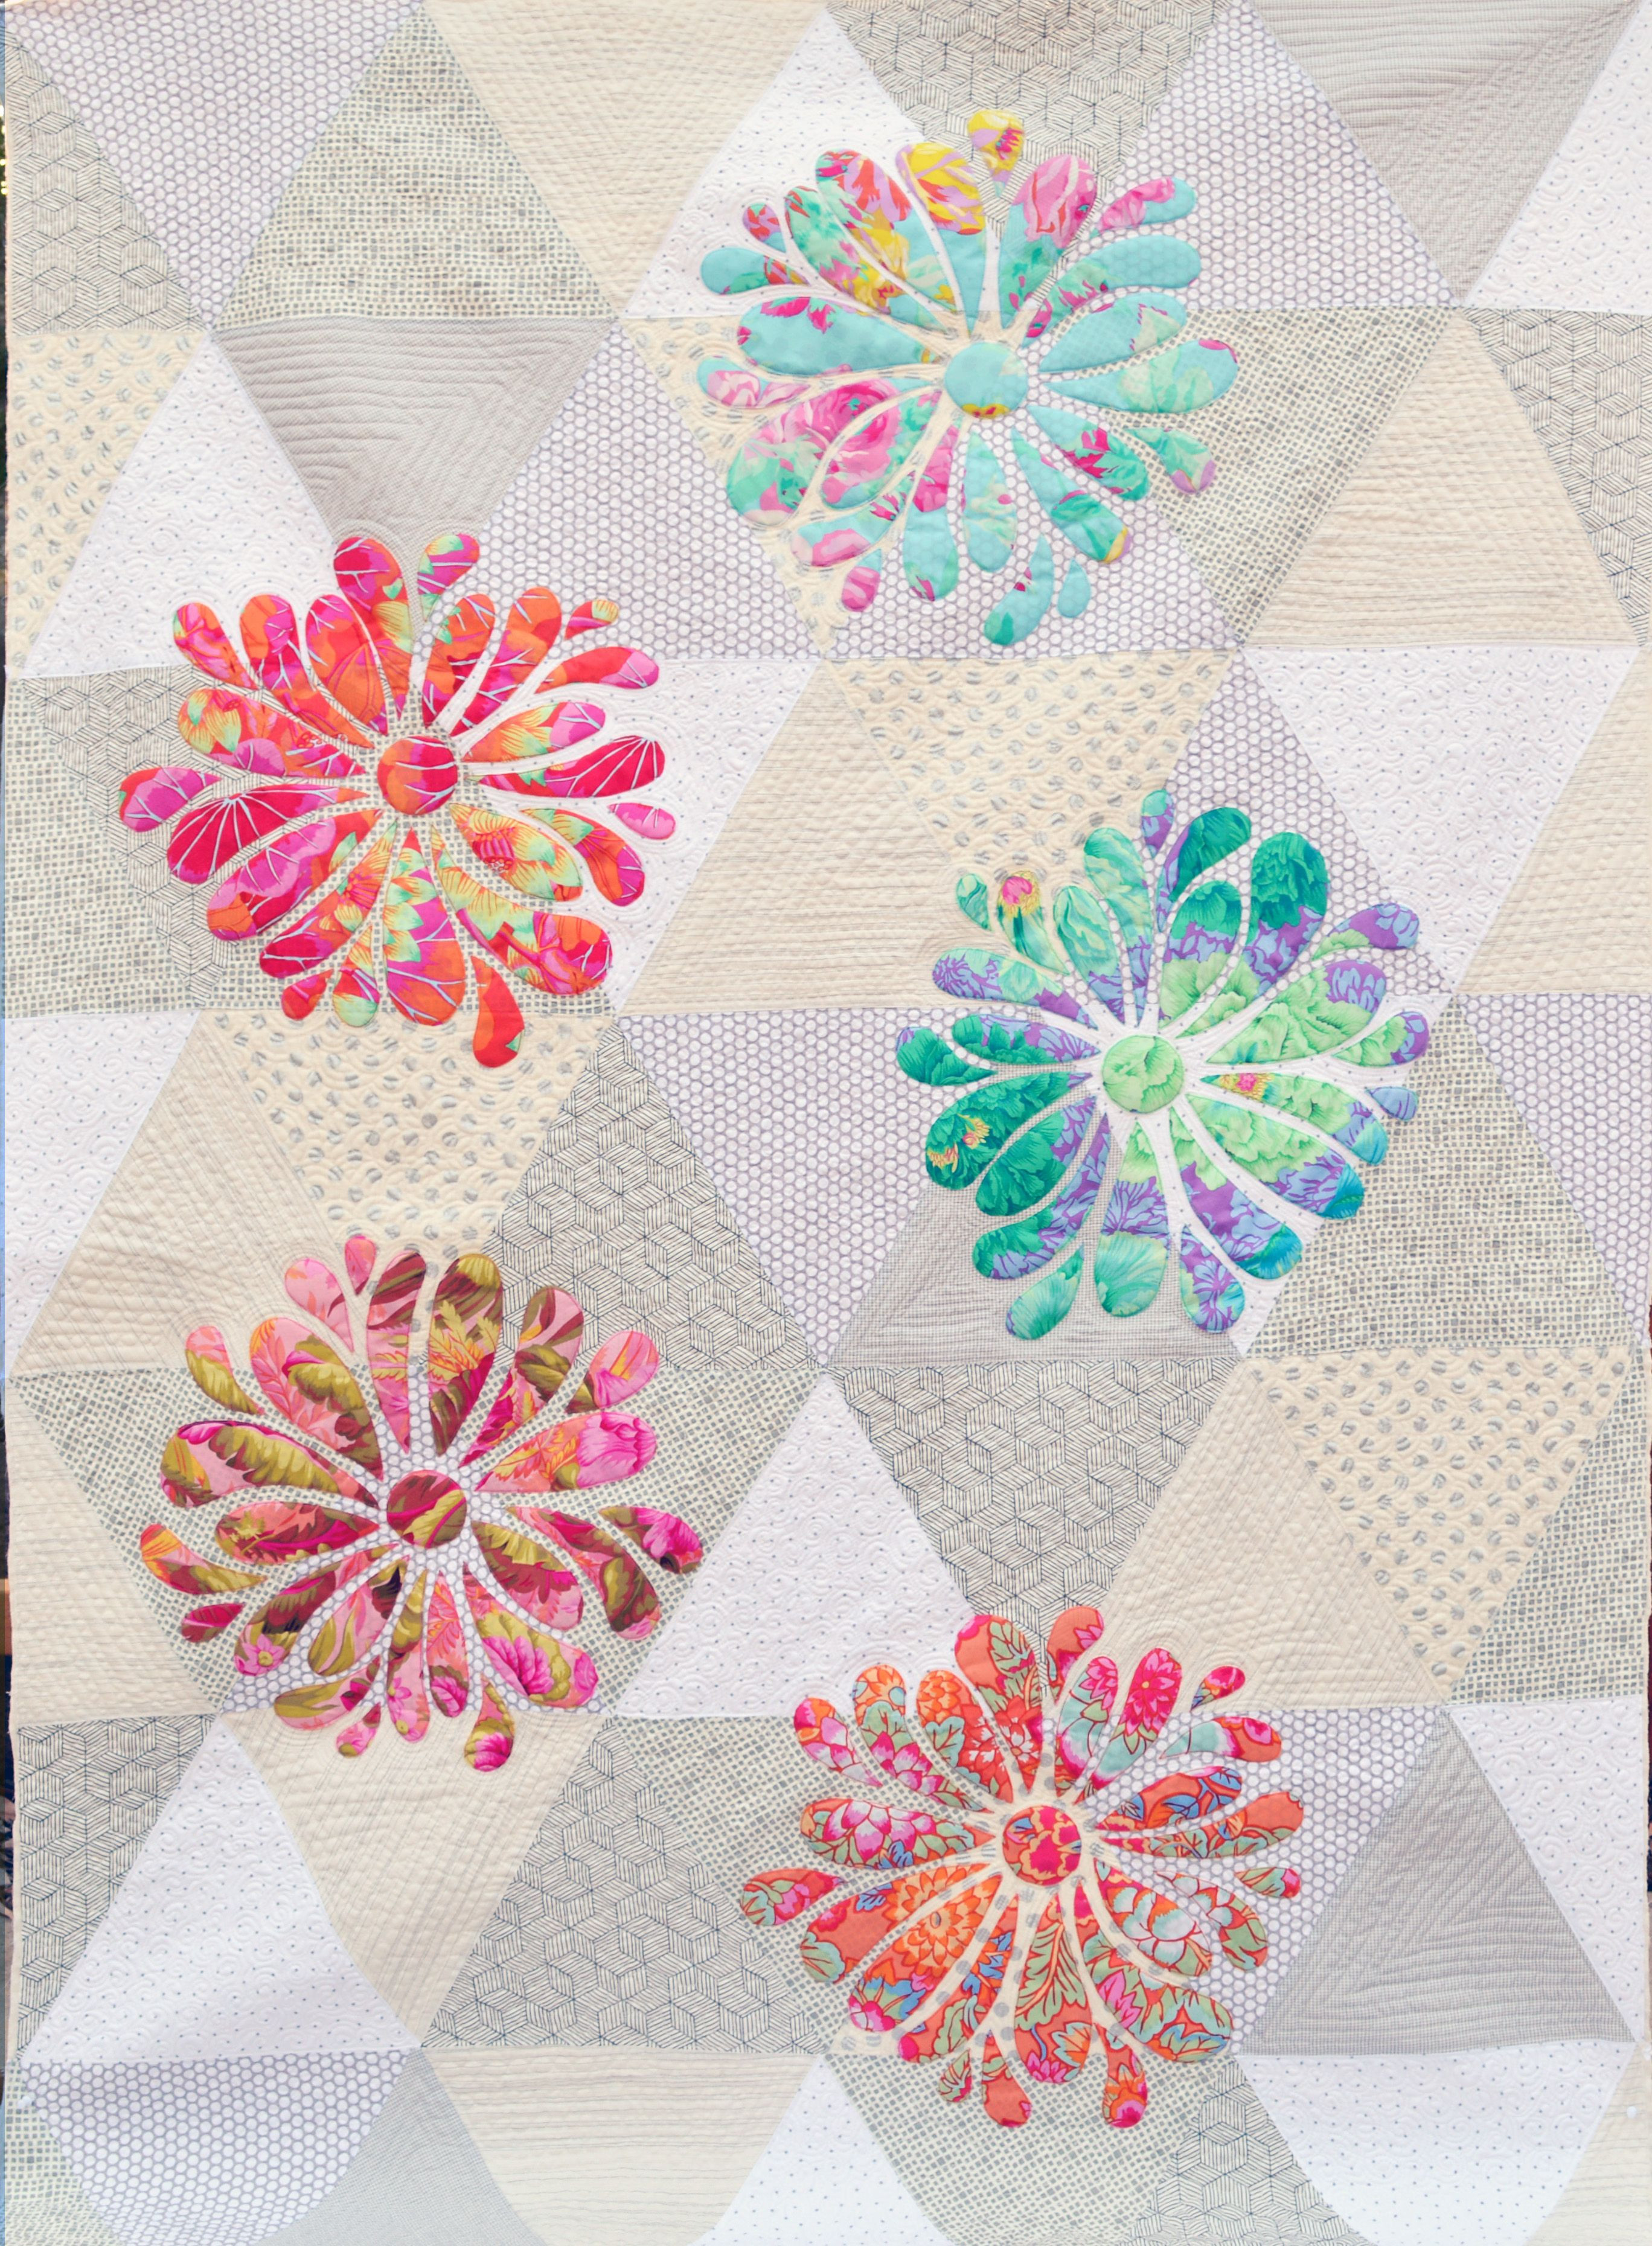 My Flower Bloom applique quilt pattern at Passionately Sewn Australia